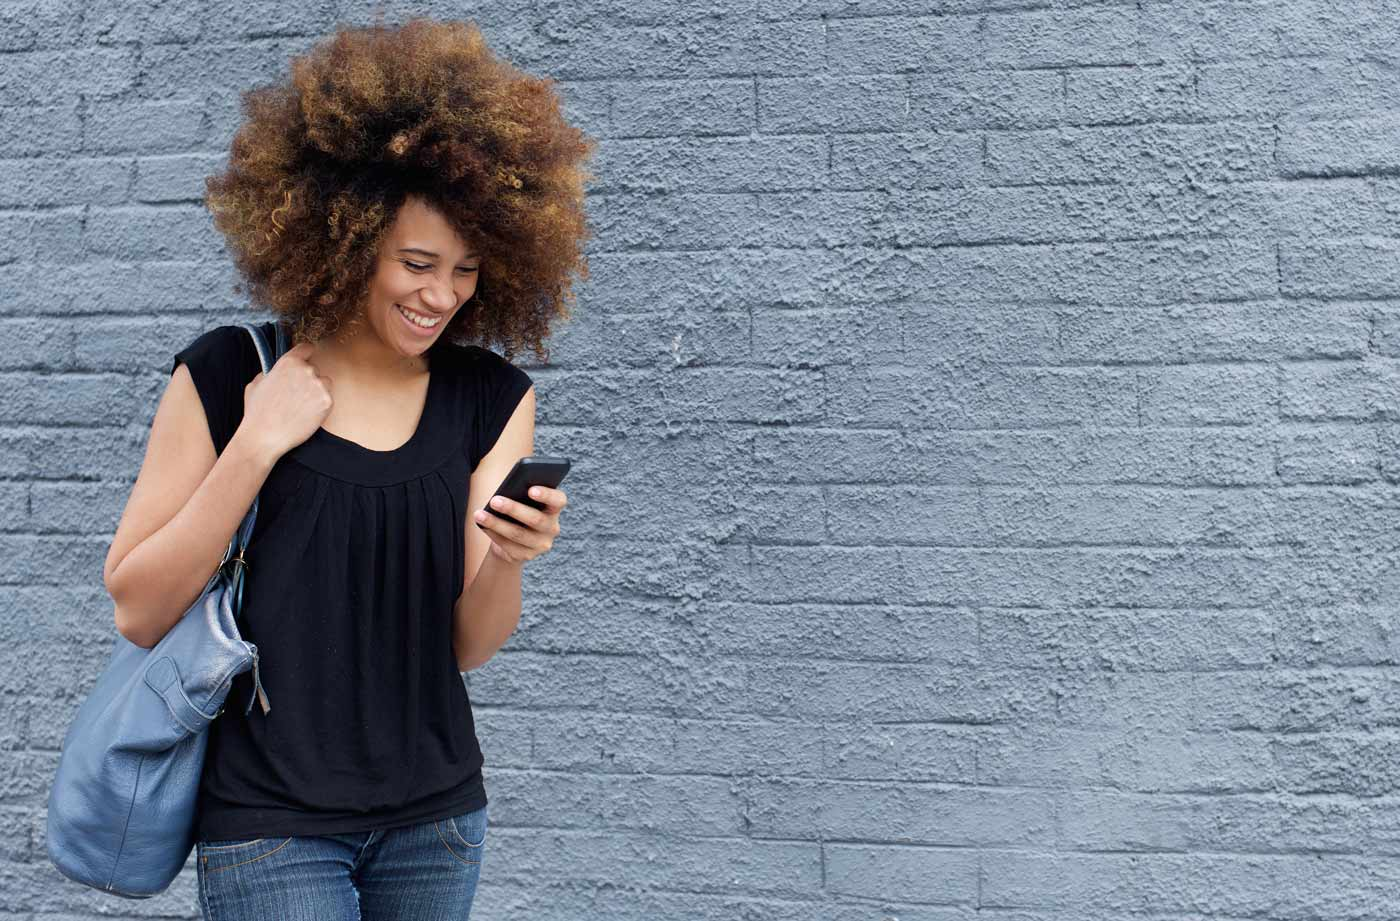 smiling-woman-walking-and-looking-at-mobile-phone